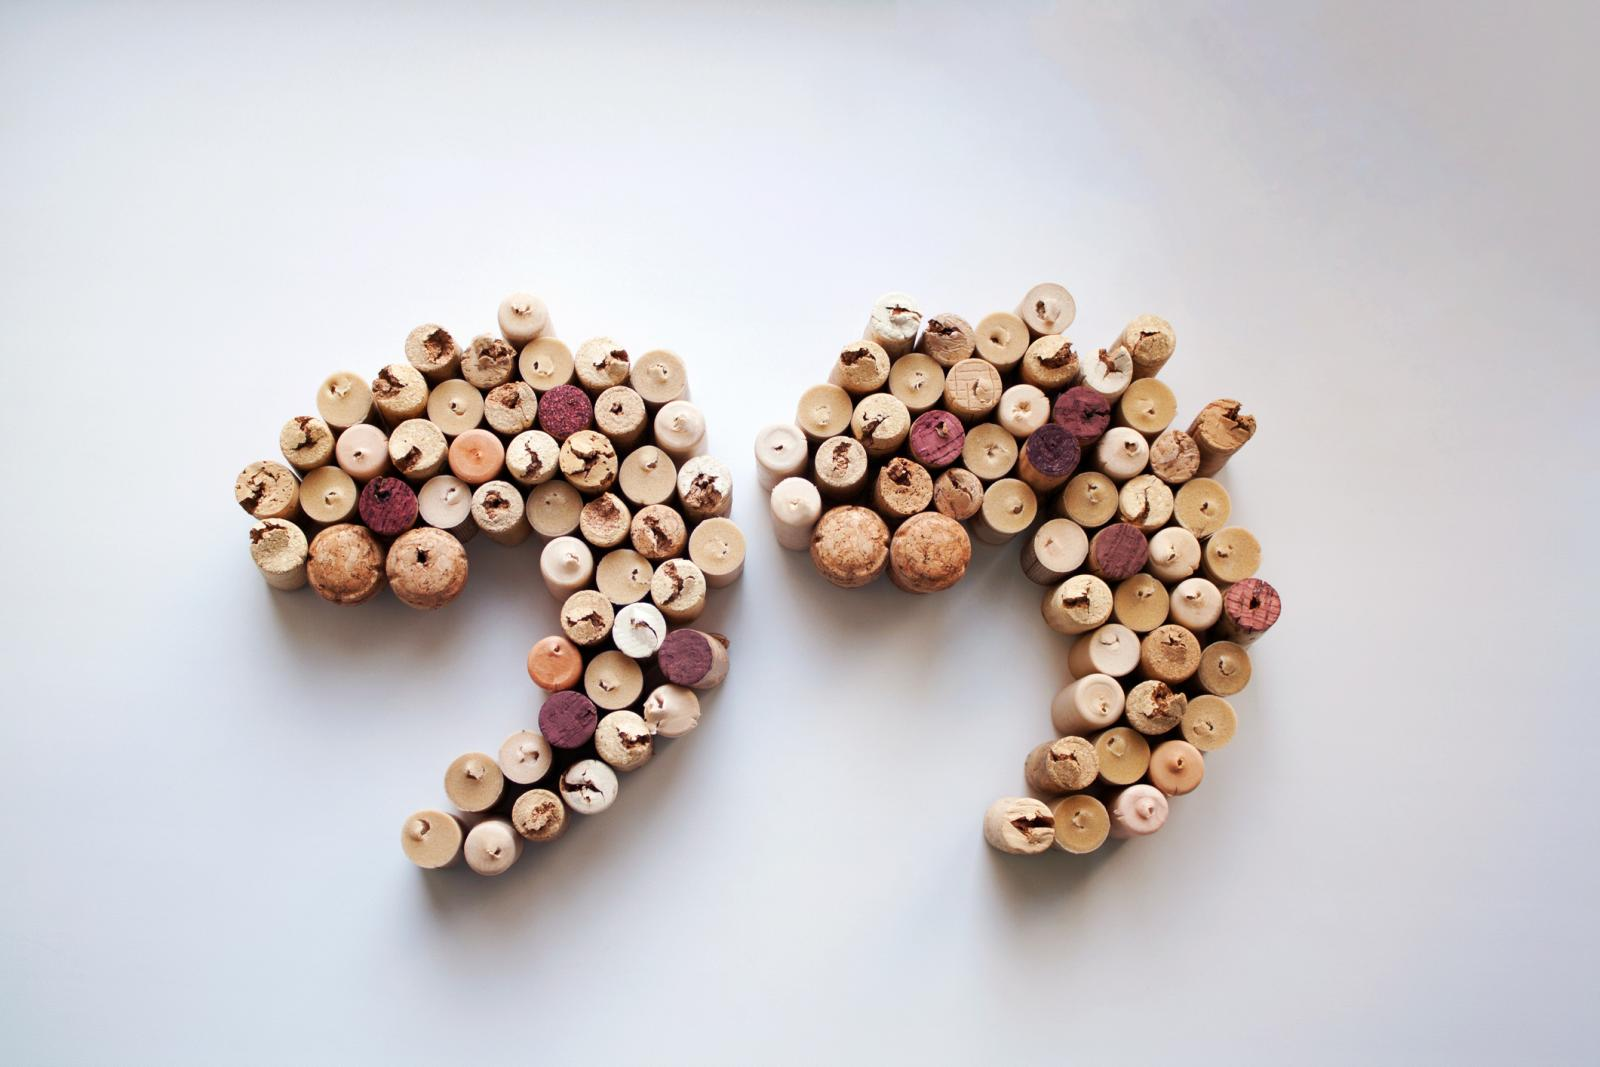 Wine corks quotation marks from above